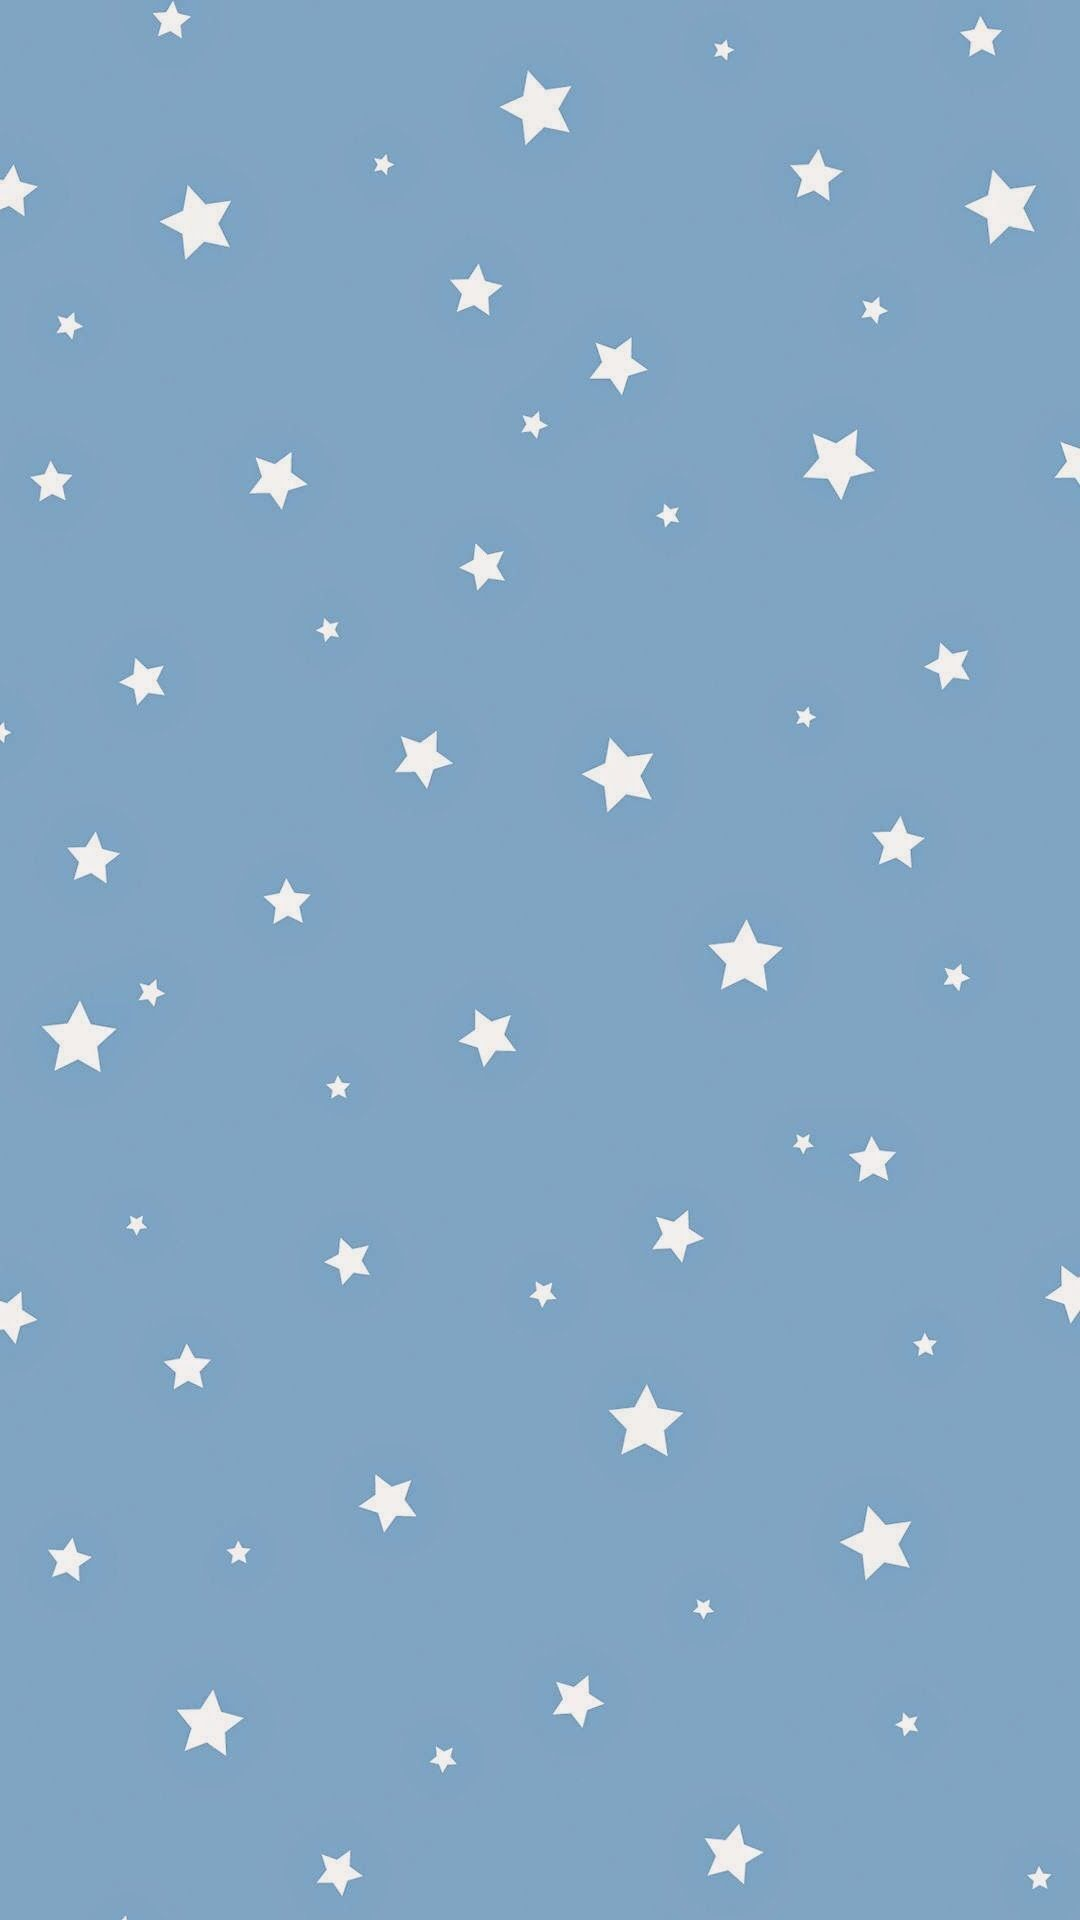 Star Aesthetic Wallpaper : aesthetic, wallpaper, Google, Image, Result, Https://wallpaperplay.com/walls/full/7/c/b/209341.jpg, Wallpaper, Iphone,, Aesthetic,